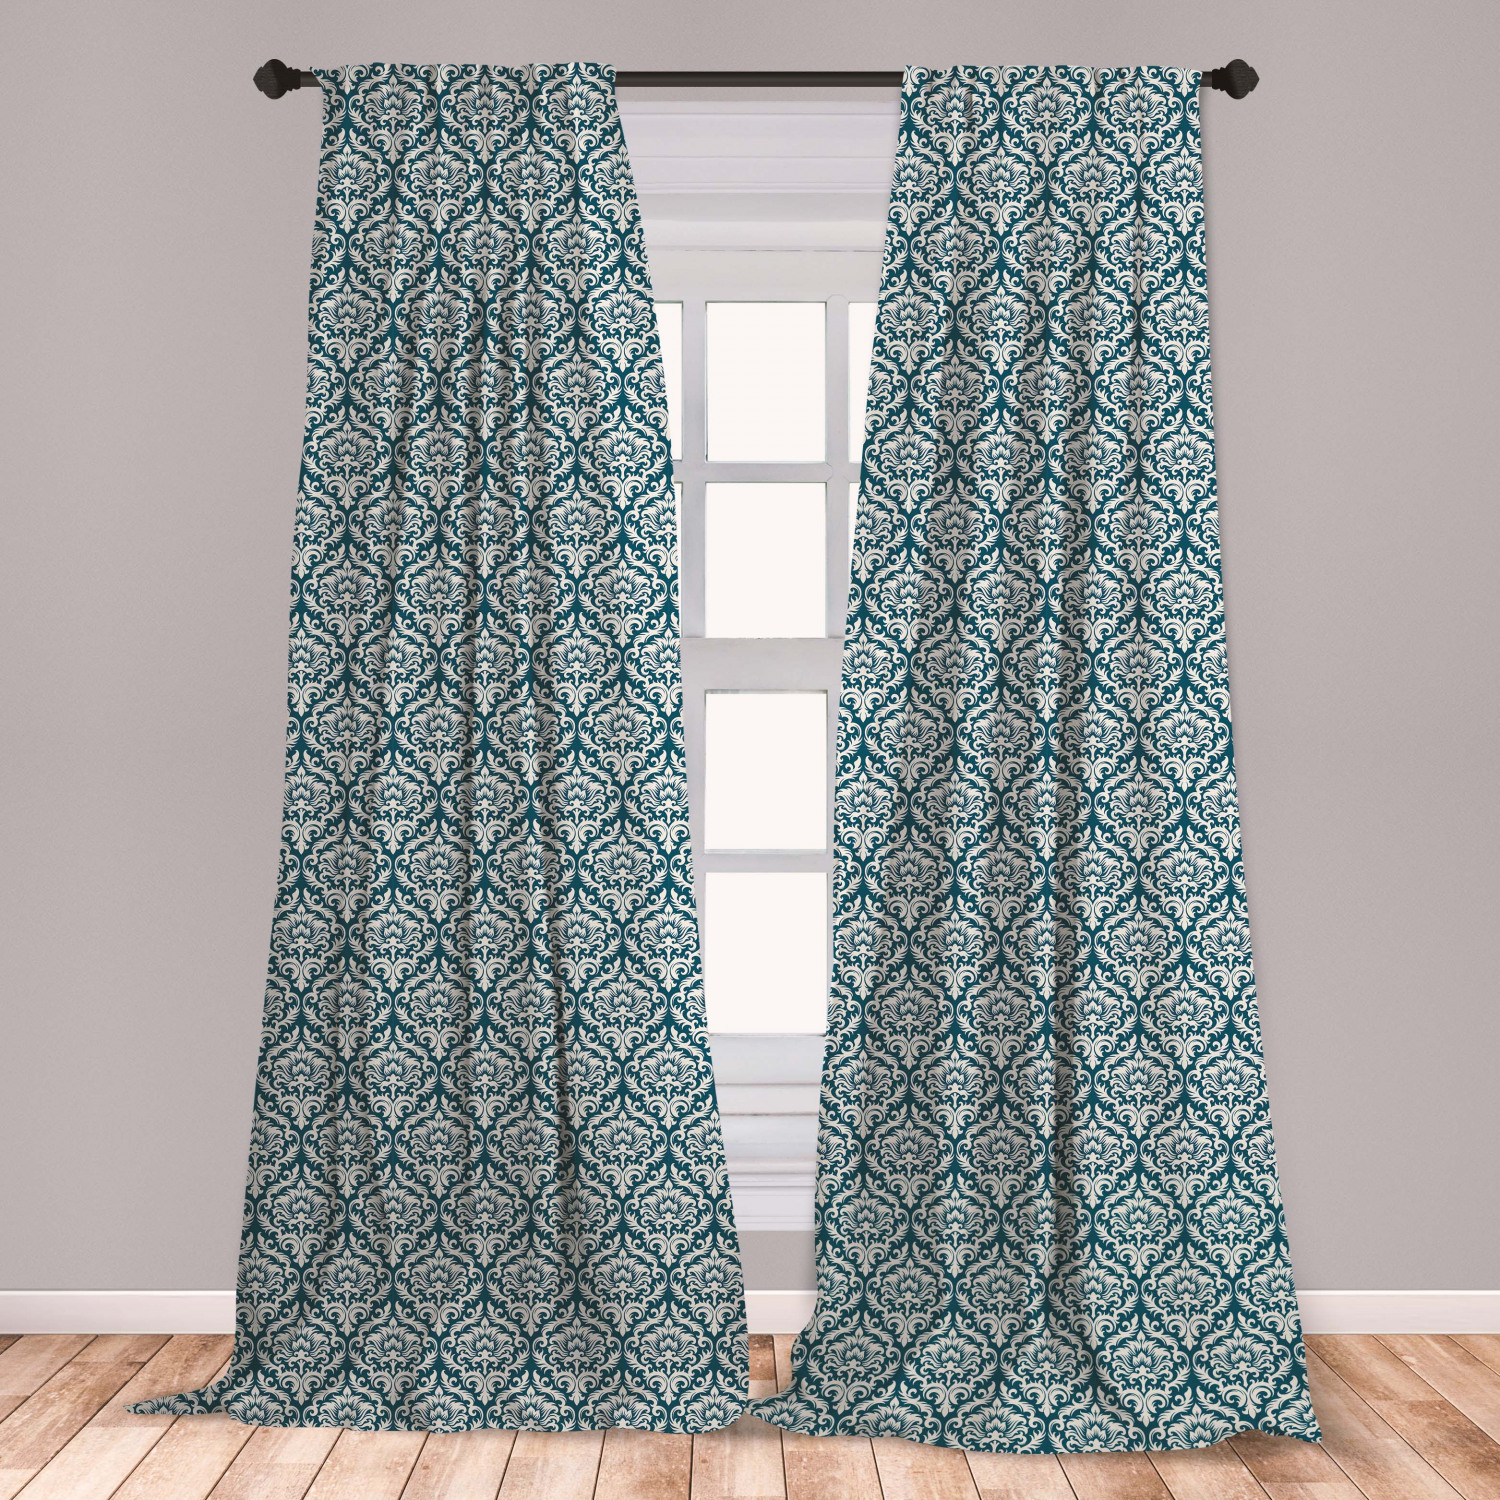 Victorian Curtains 2 Panels Set Fashionable Modern Country Style Abstract Illustrated Antiquity Vintage Window Drapes For Living Room Bedroom Navy Blue Cream By Ambesonne Walmart Com Walmart Com